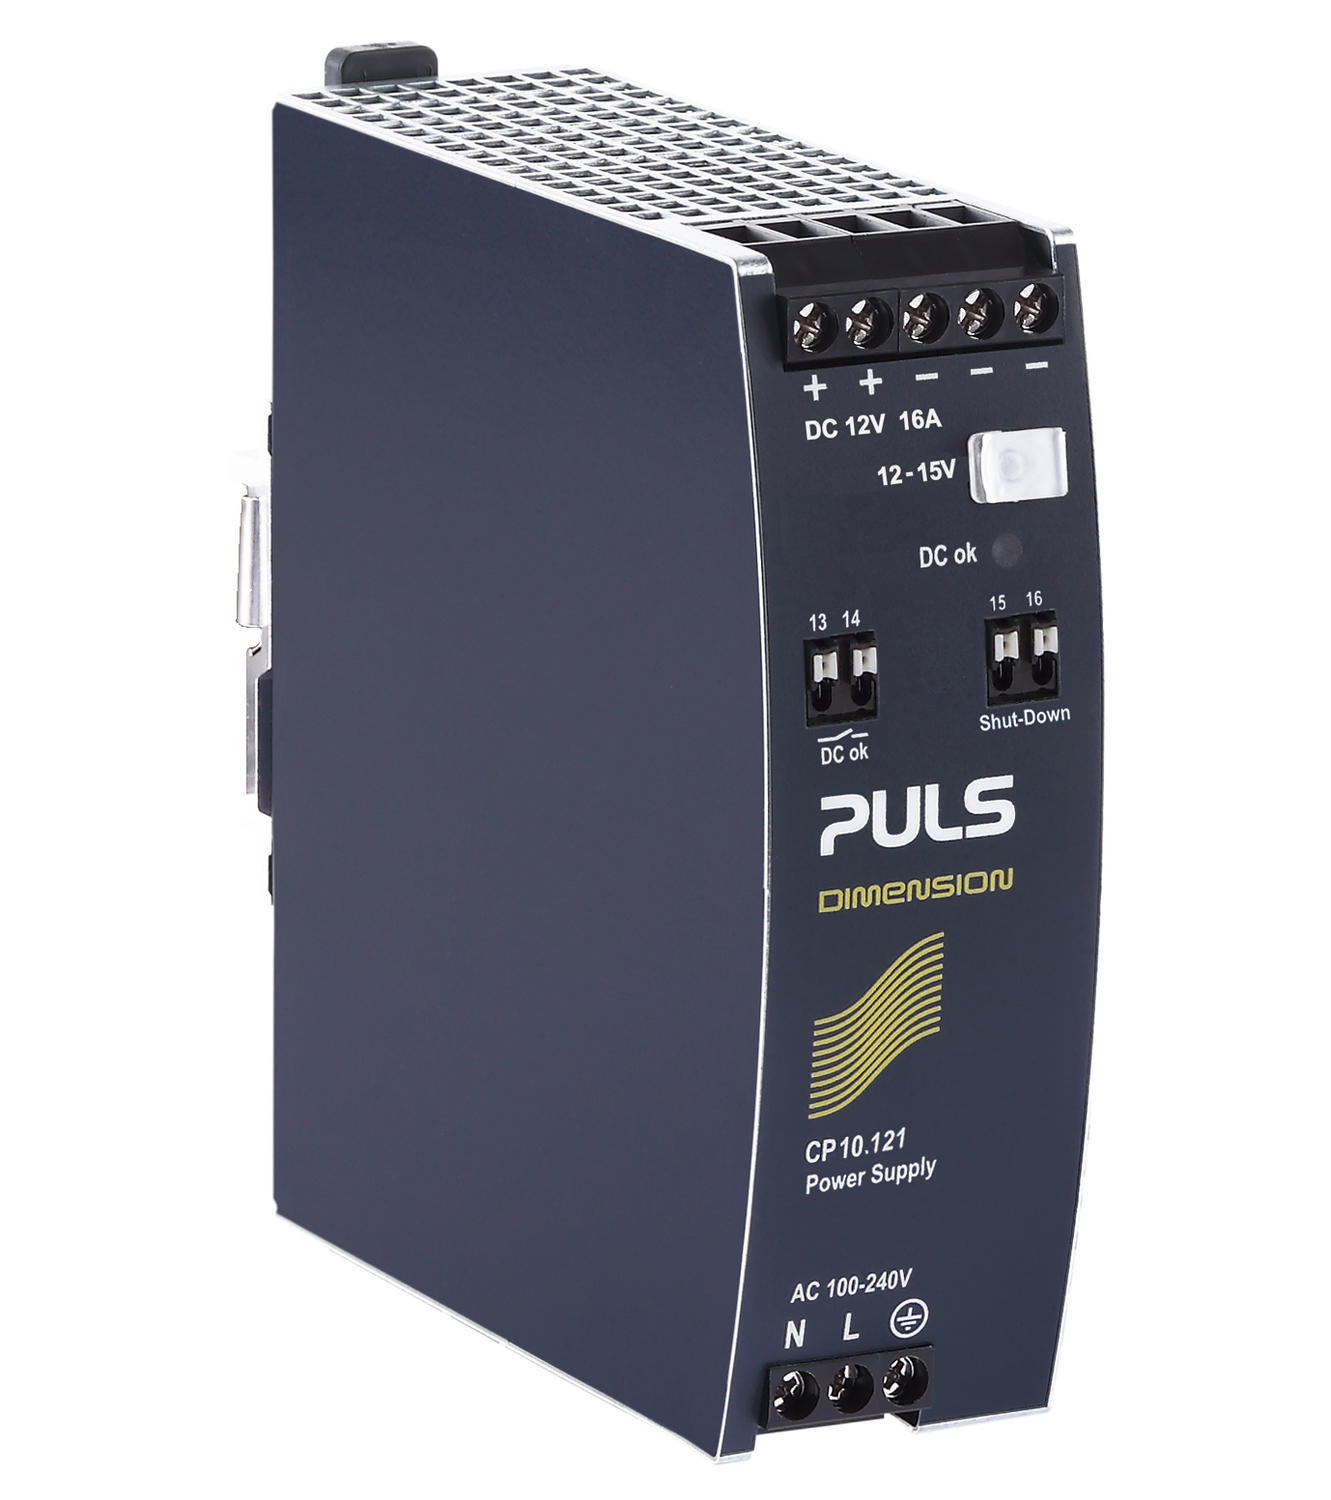 Power supply 1-phase, 12 V dc Dimension C Series, Generation 2